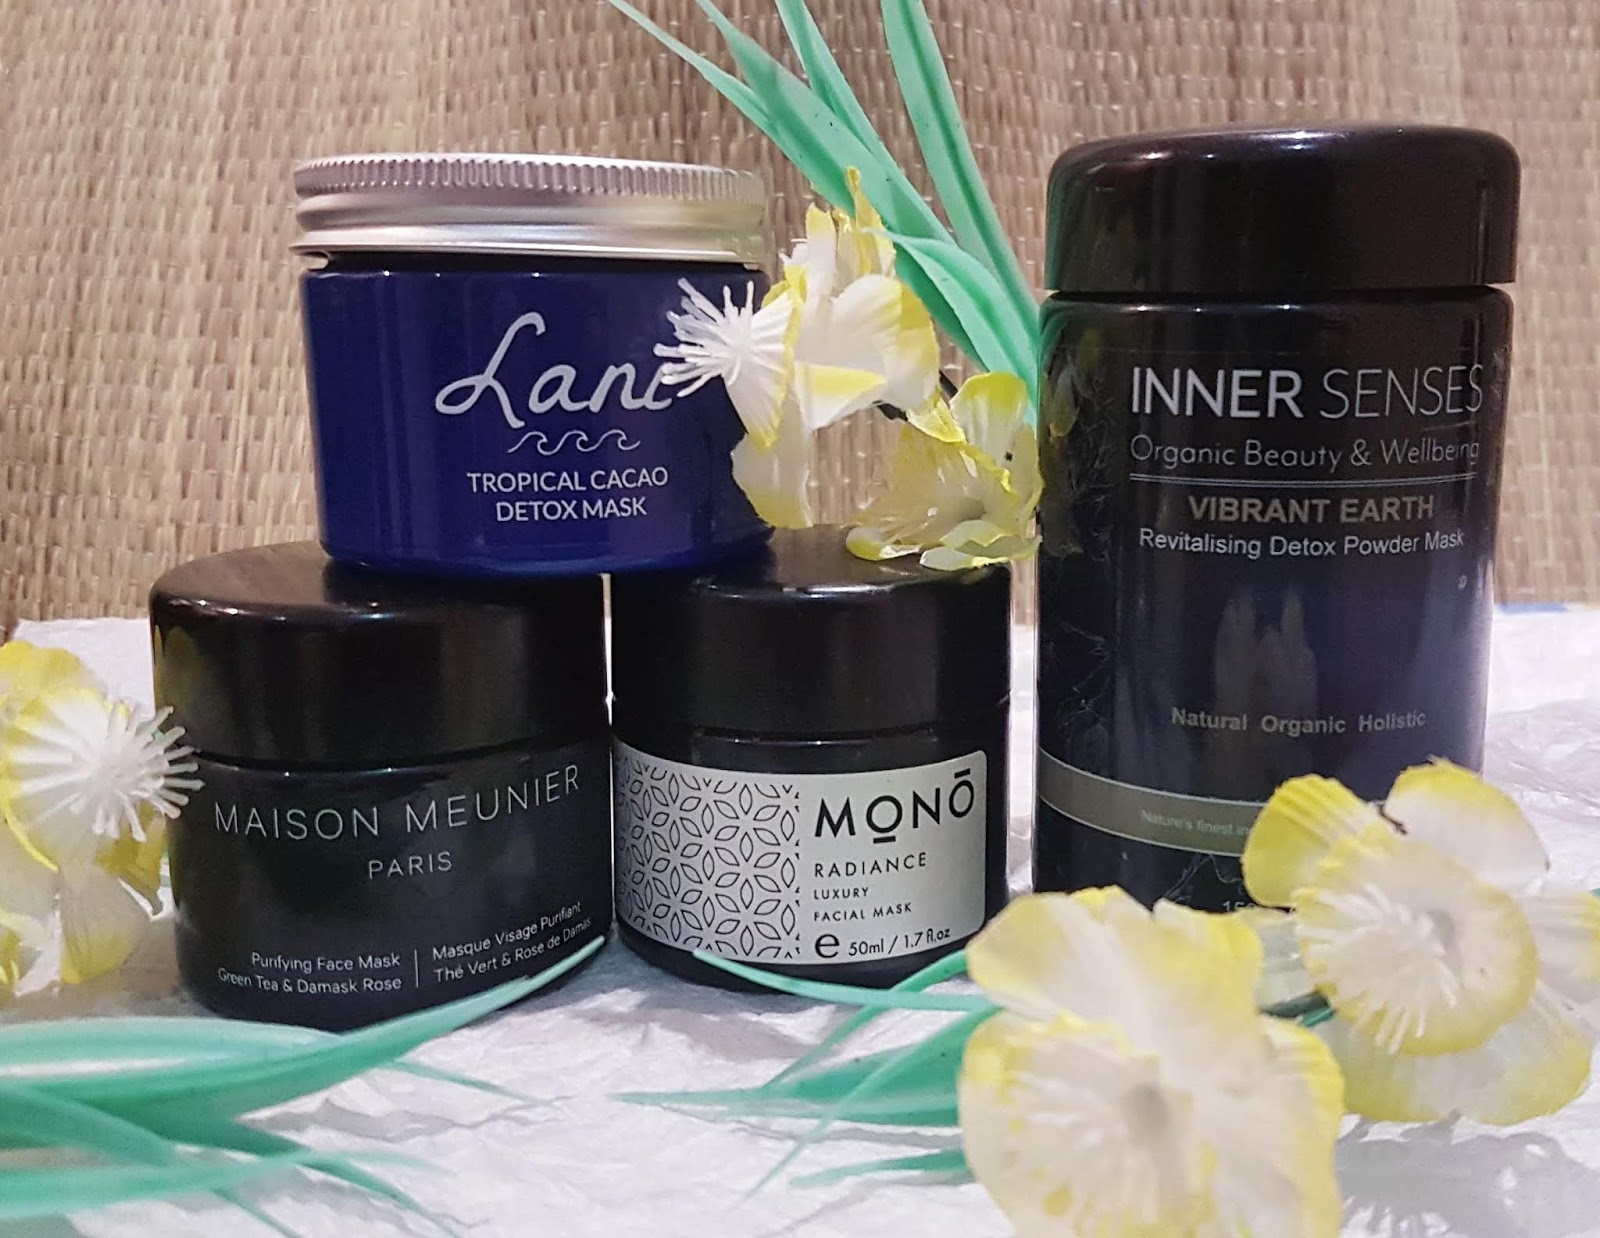 Best of Ethical Skincare 2019 - Face Masks: Maison Meunier Love Absolute Inner Senses Lani Mono